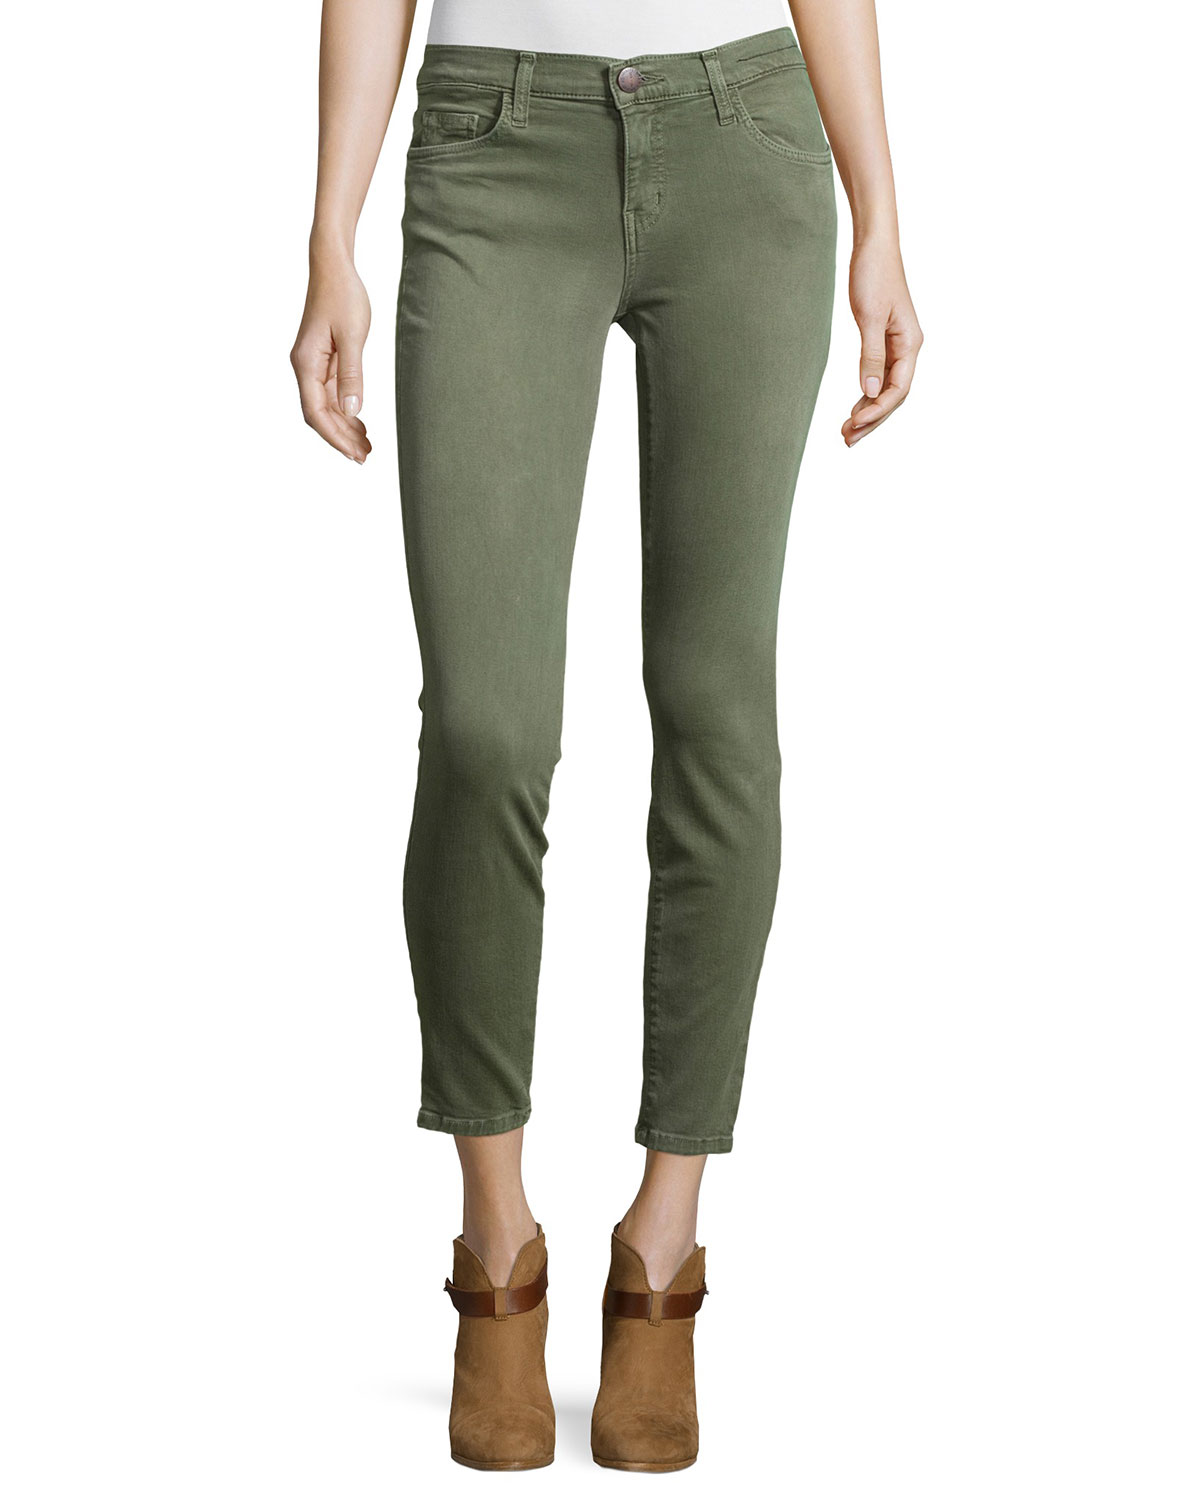 Current/Elliott The Stiletto Cropped Skinny Jeans, Army Green, Size: 31